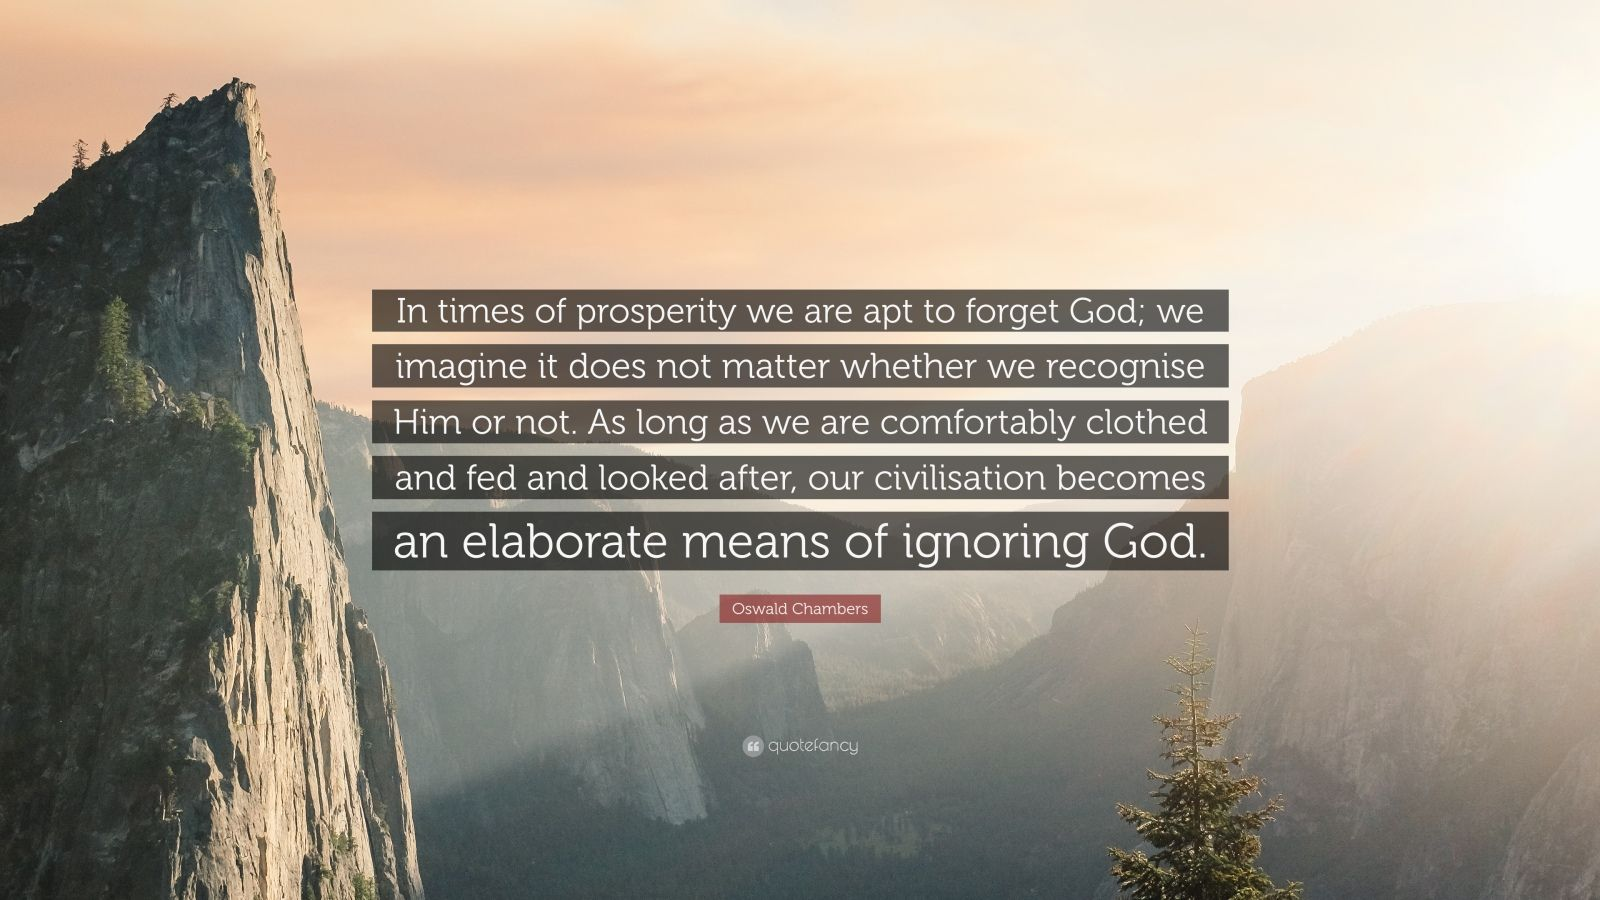 "Oswald Chambers Quote: ""In times of prosperity we are apt to forget God; we imagine it does not matter whether we recognise Him or not. As long as we are comfortably clothed and fed and looked after, our civilisation becomes an elaborate means of ignoring God."""